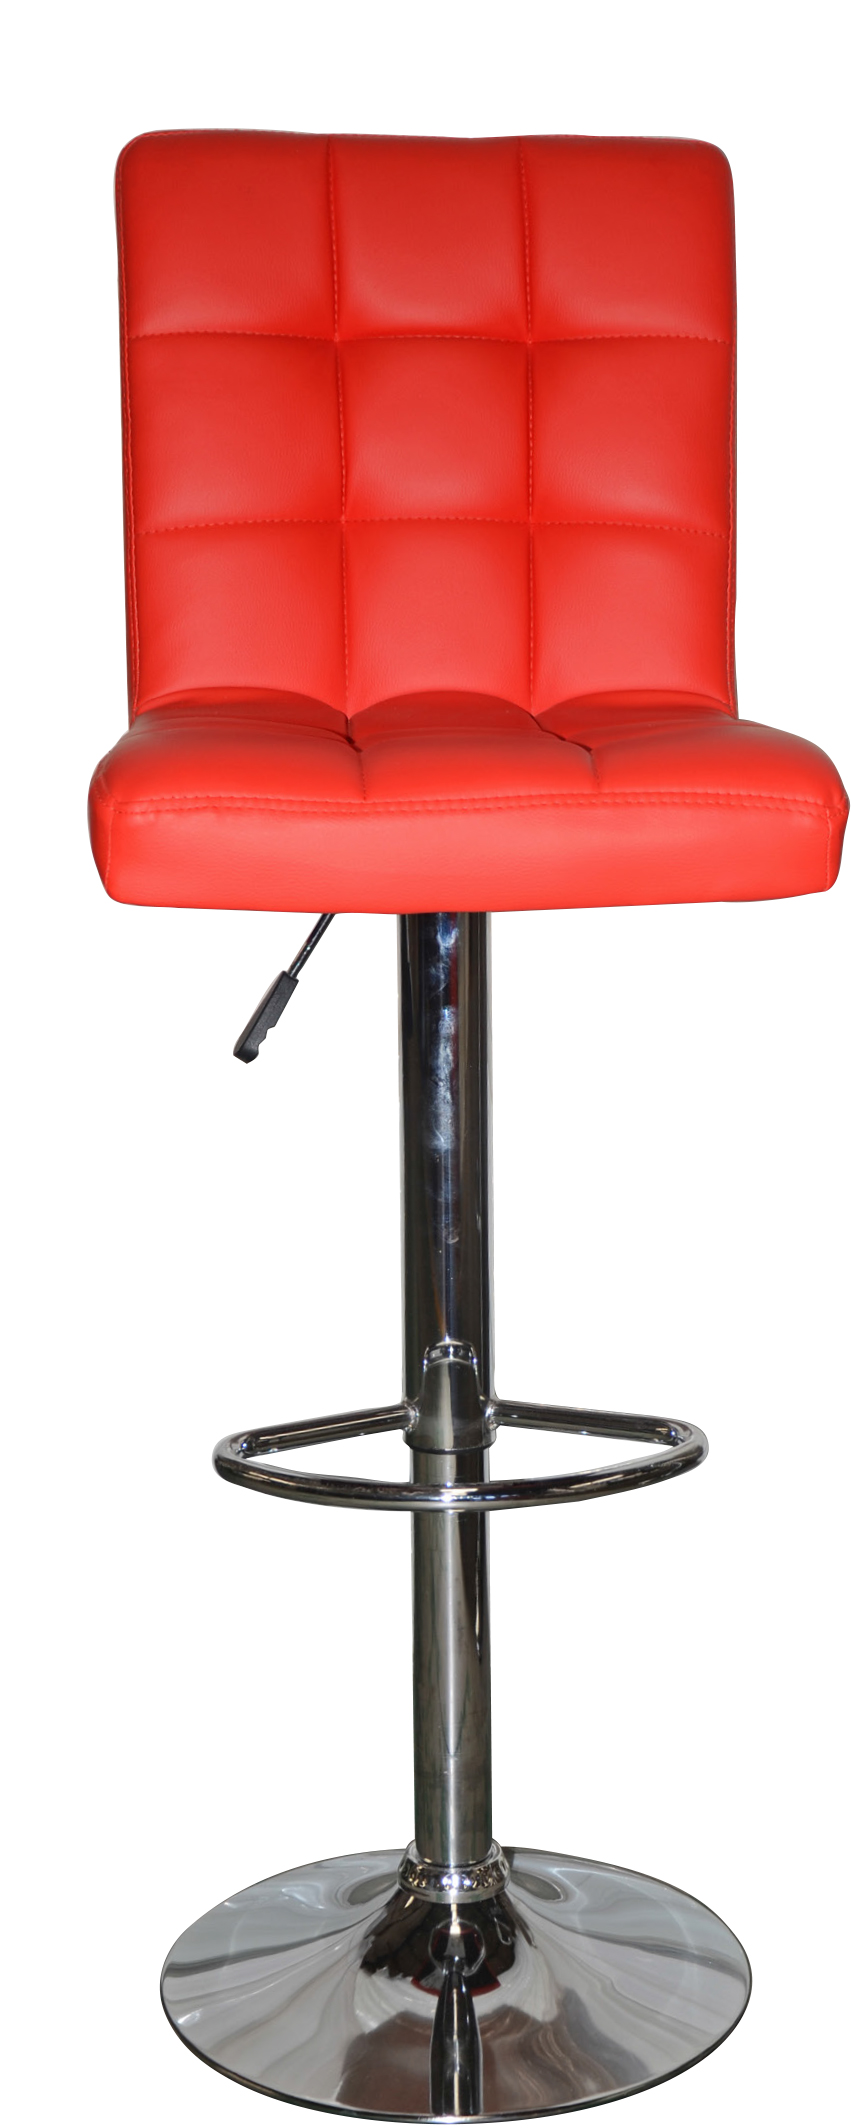 Cheap stools baffling design ideas patio dining chairs for Cheap stools